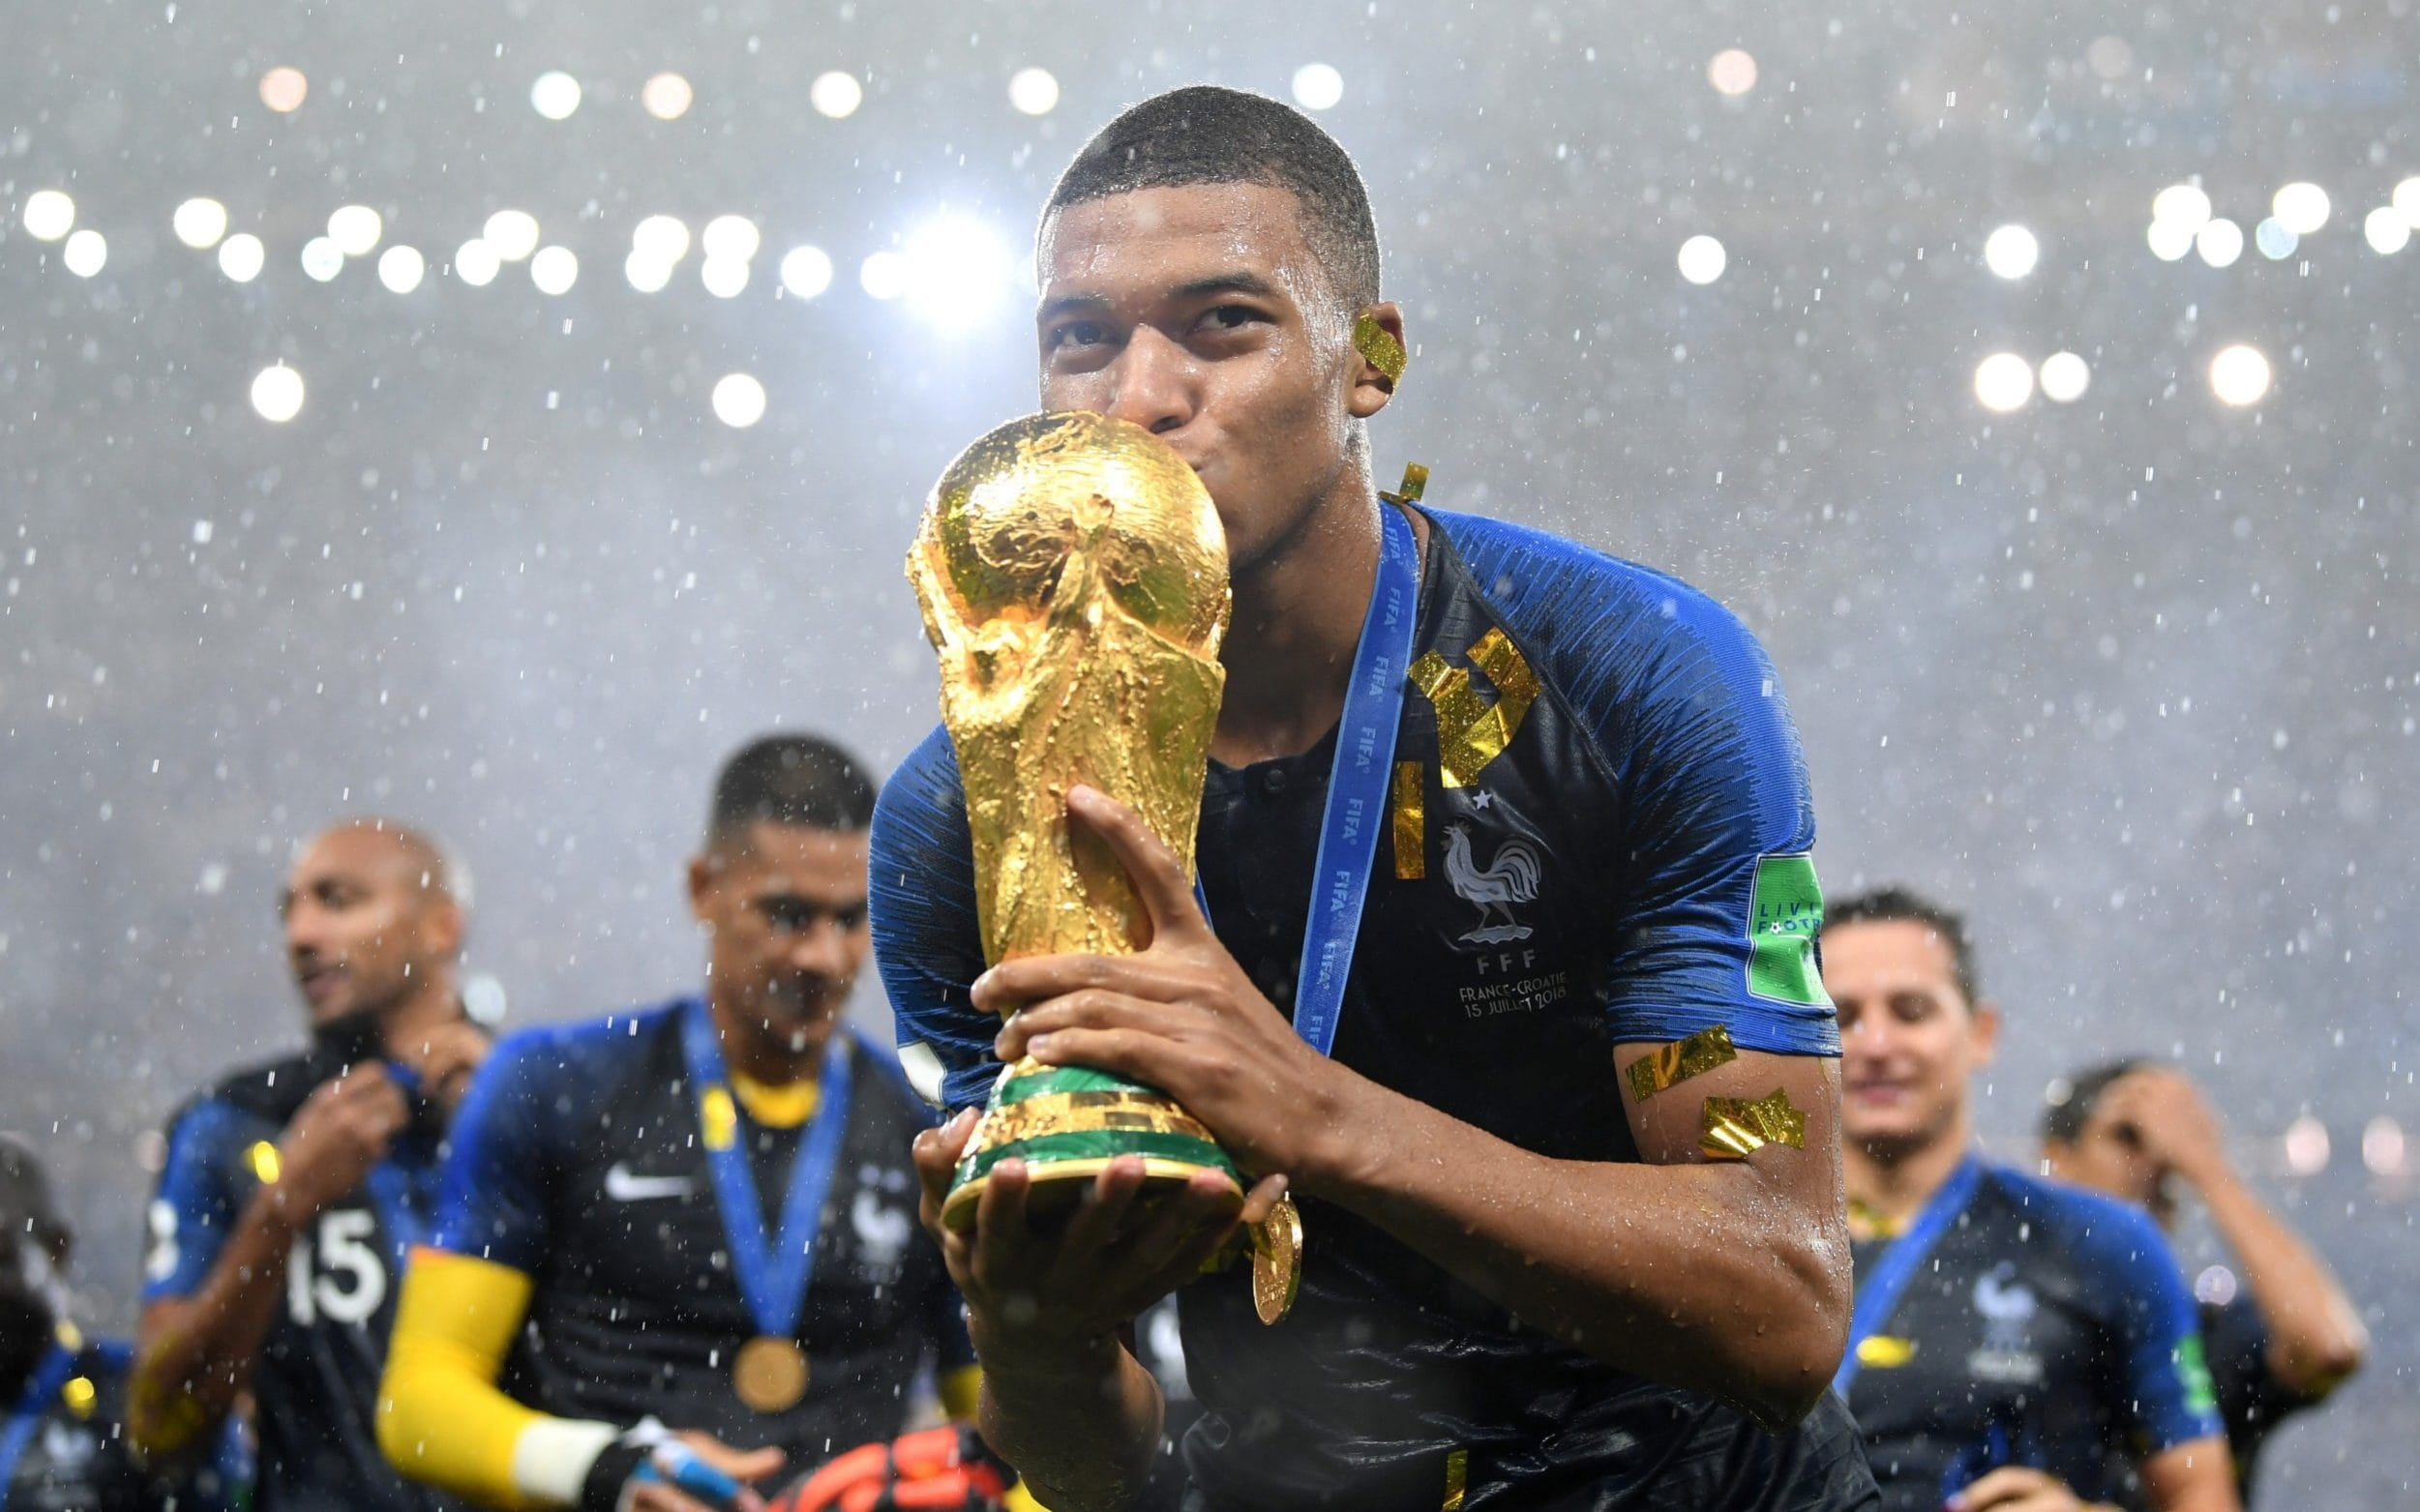 Will Kylian Mbappe join Real Madrid